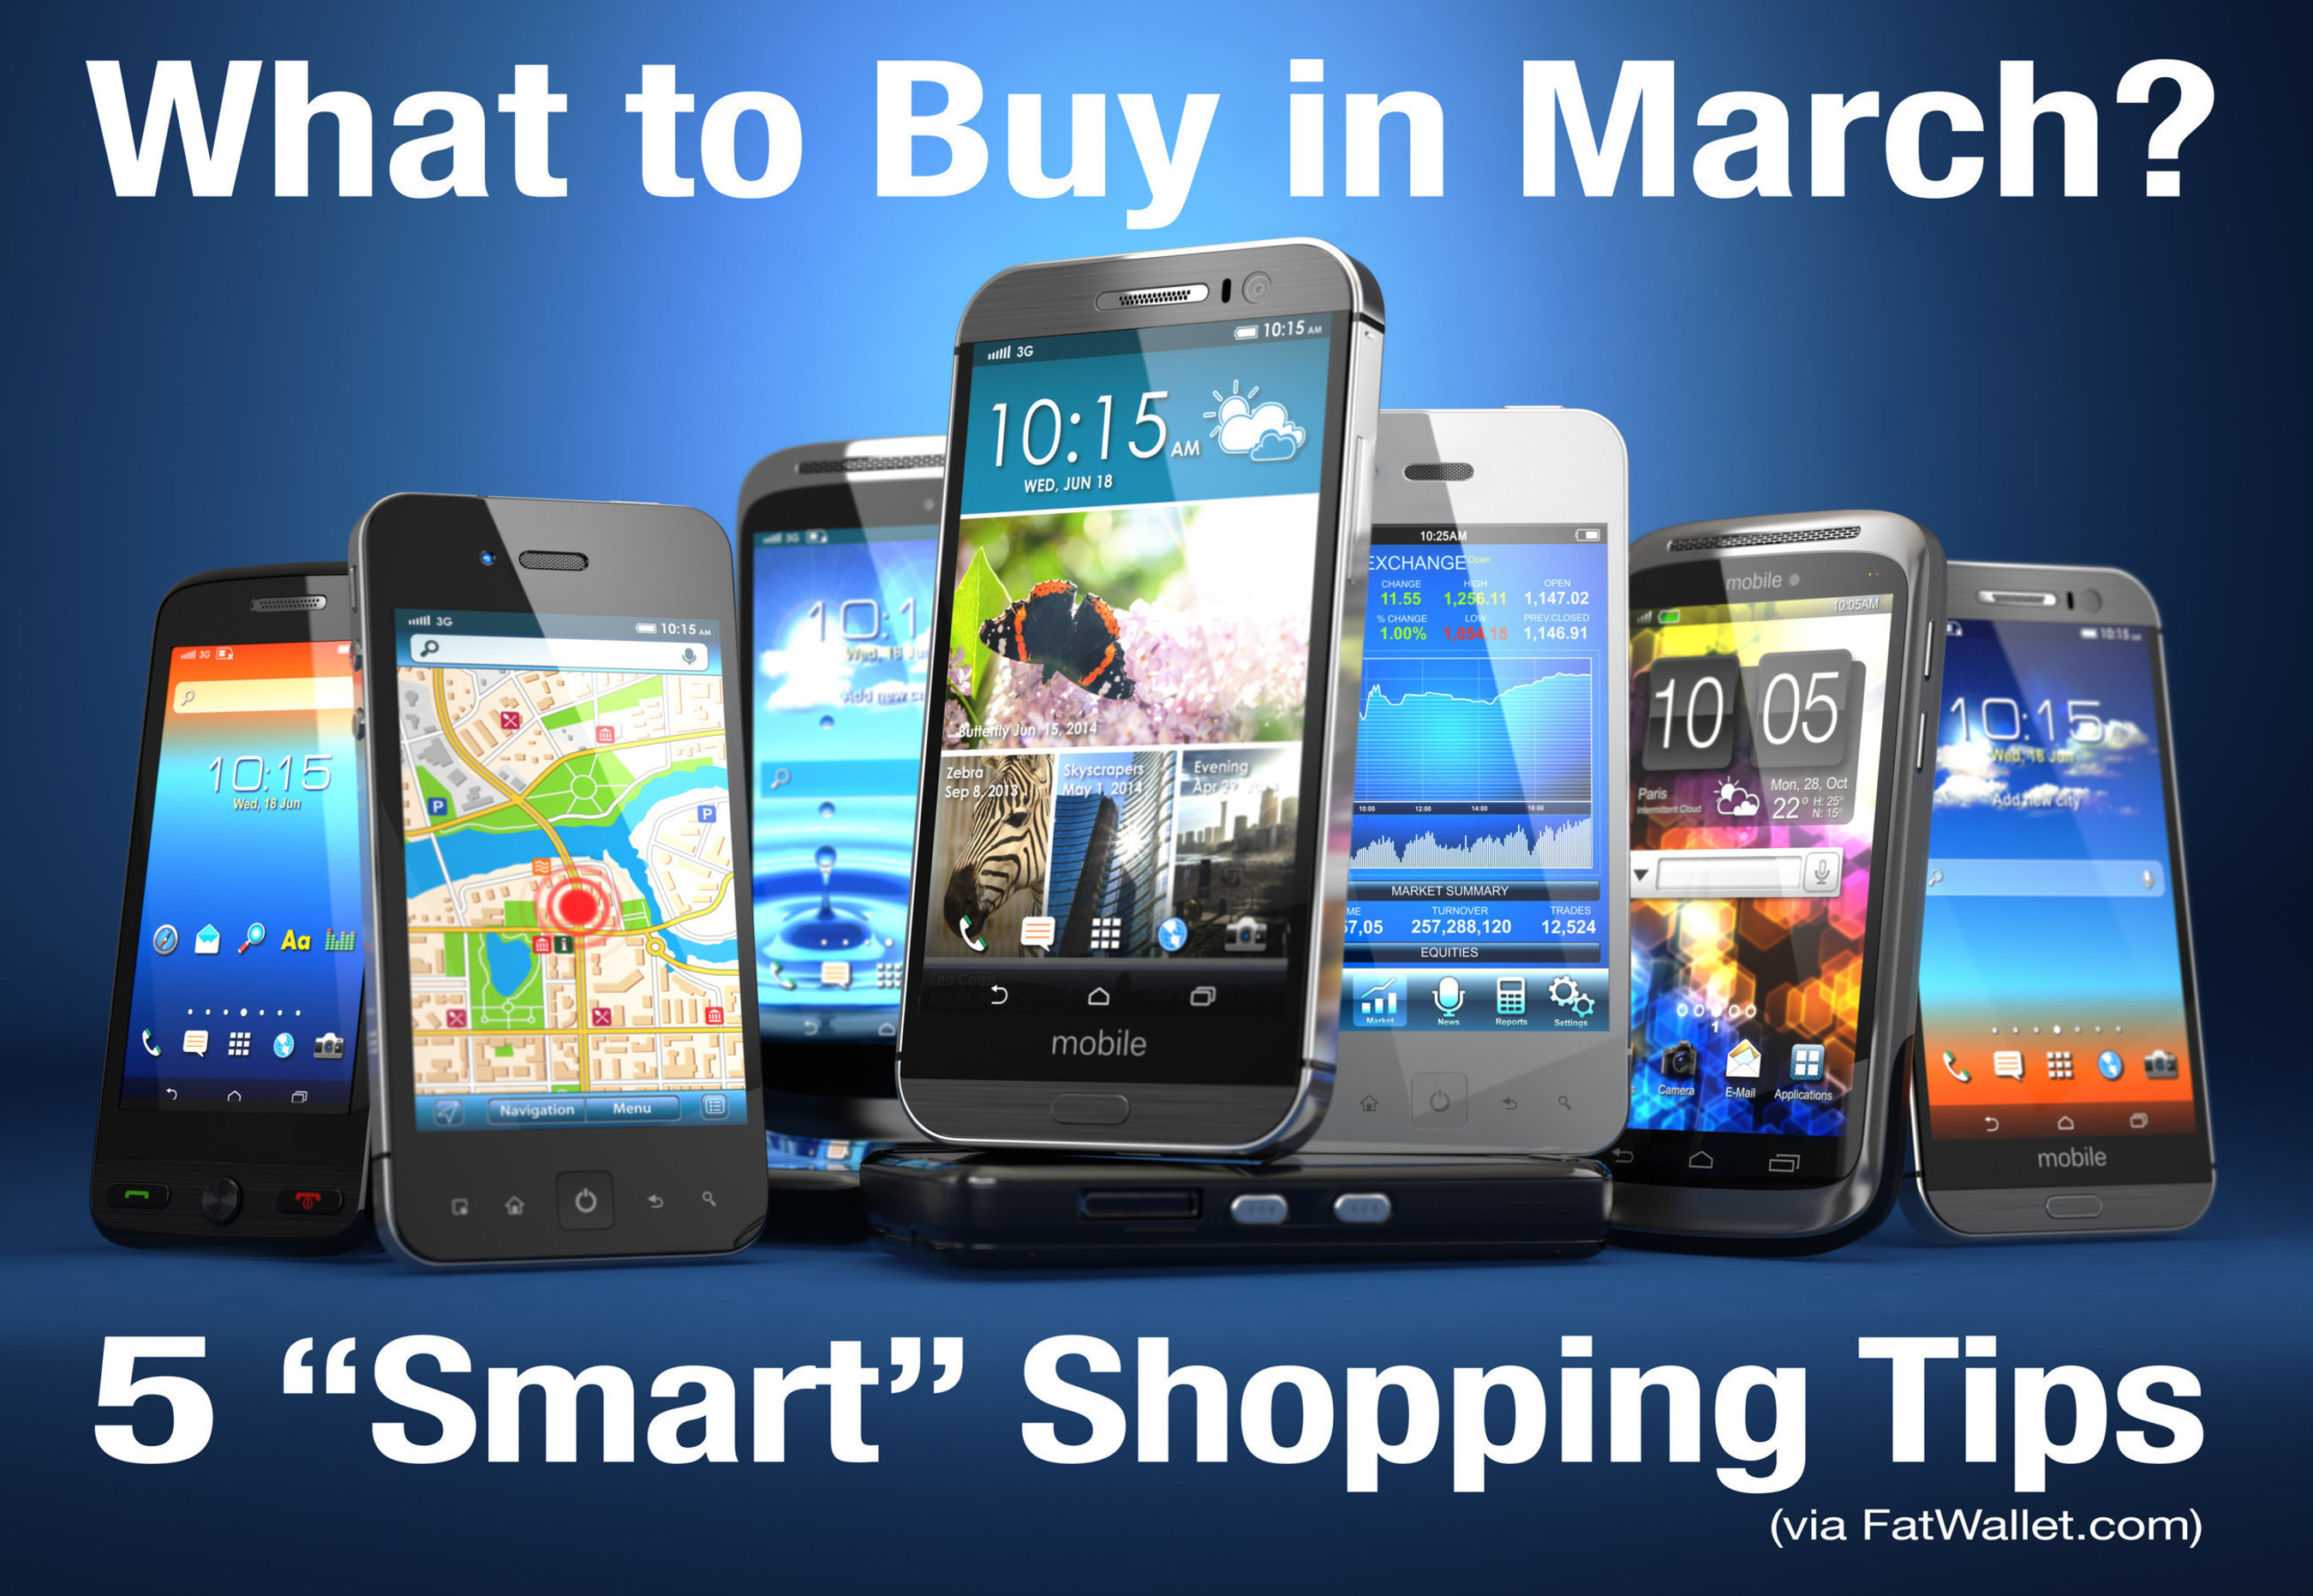 What to Buy in March - 5 'Smart' Shopping Tips